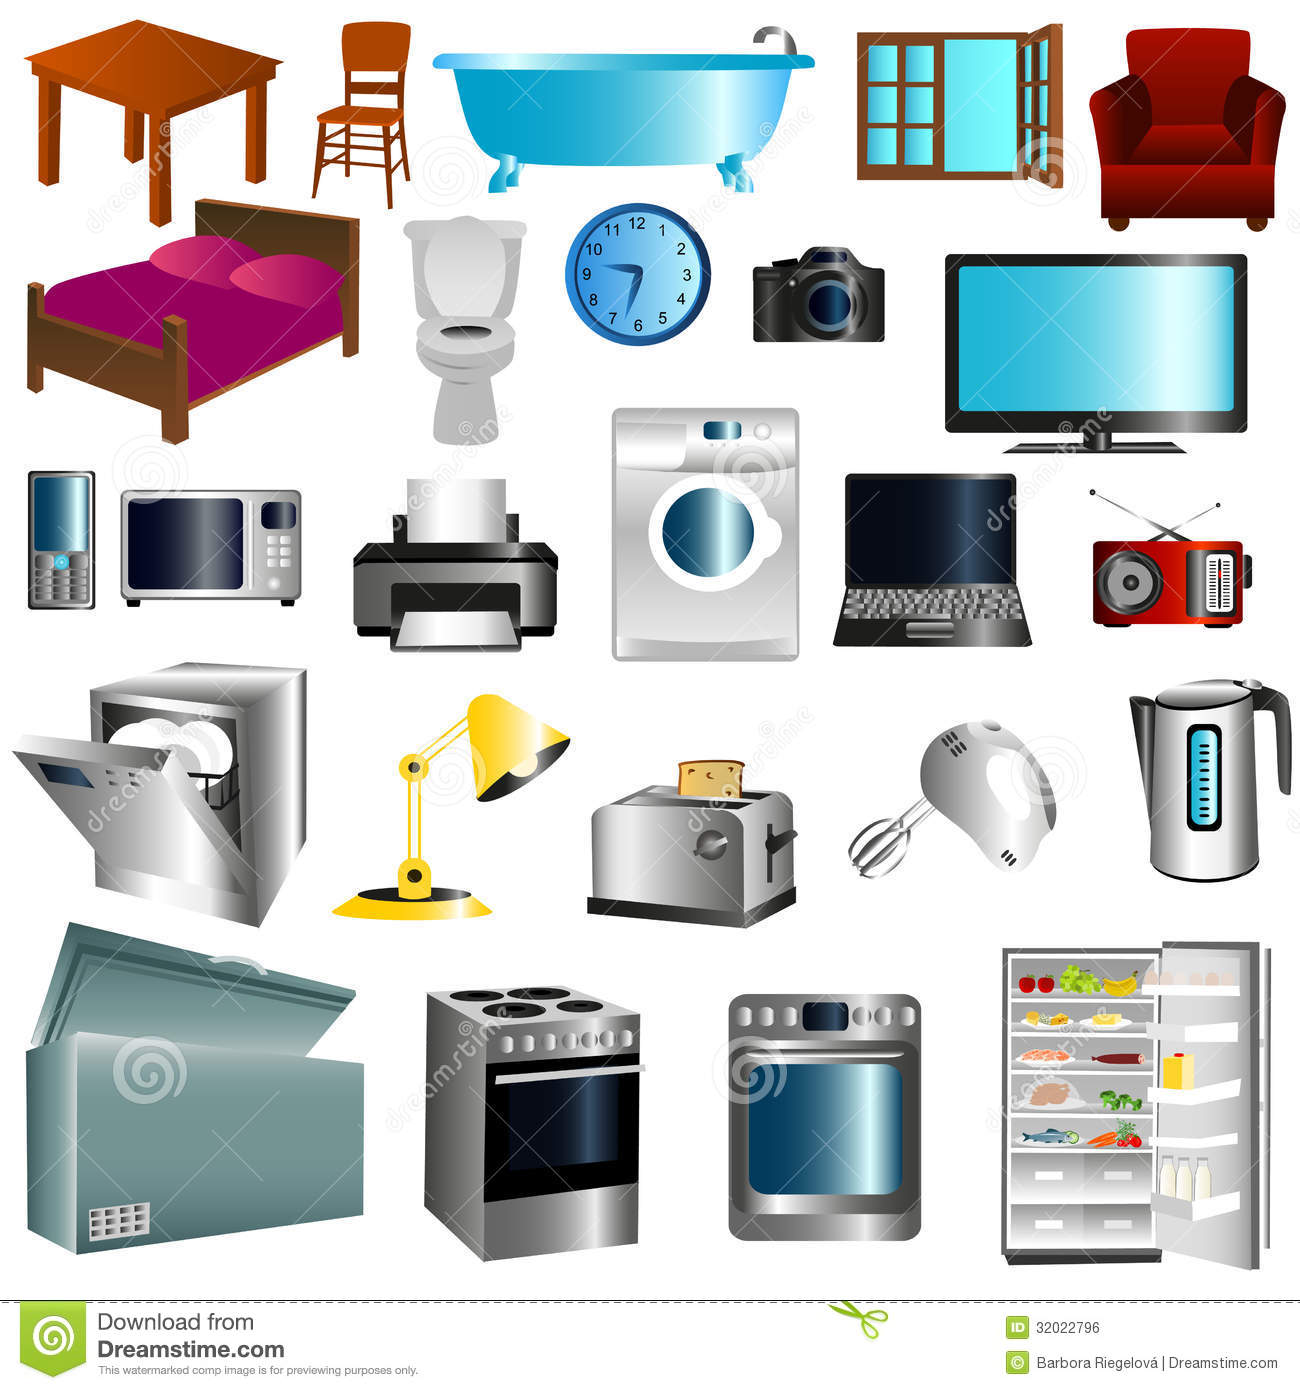 furniture appliances illustration white background 32022796